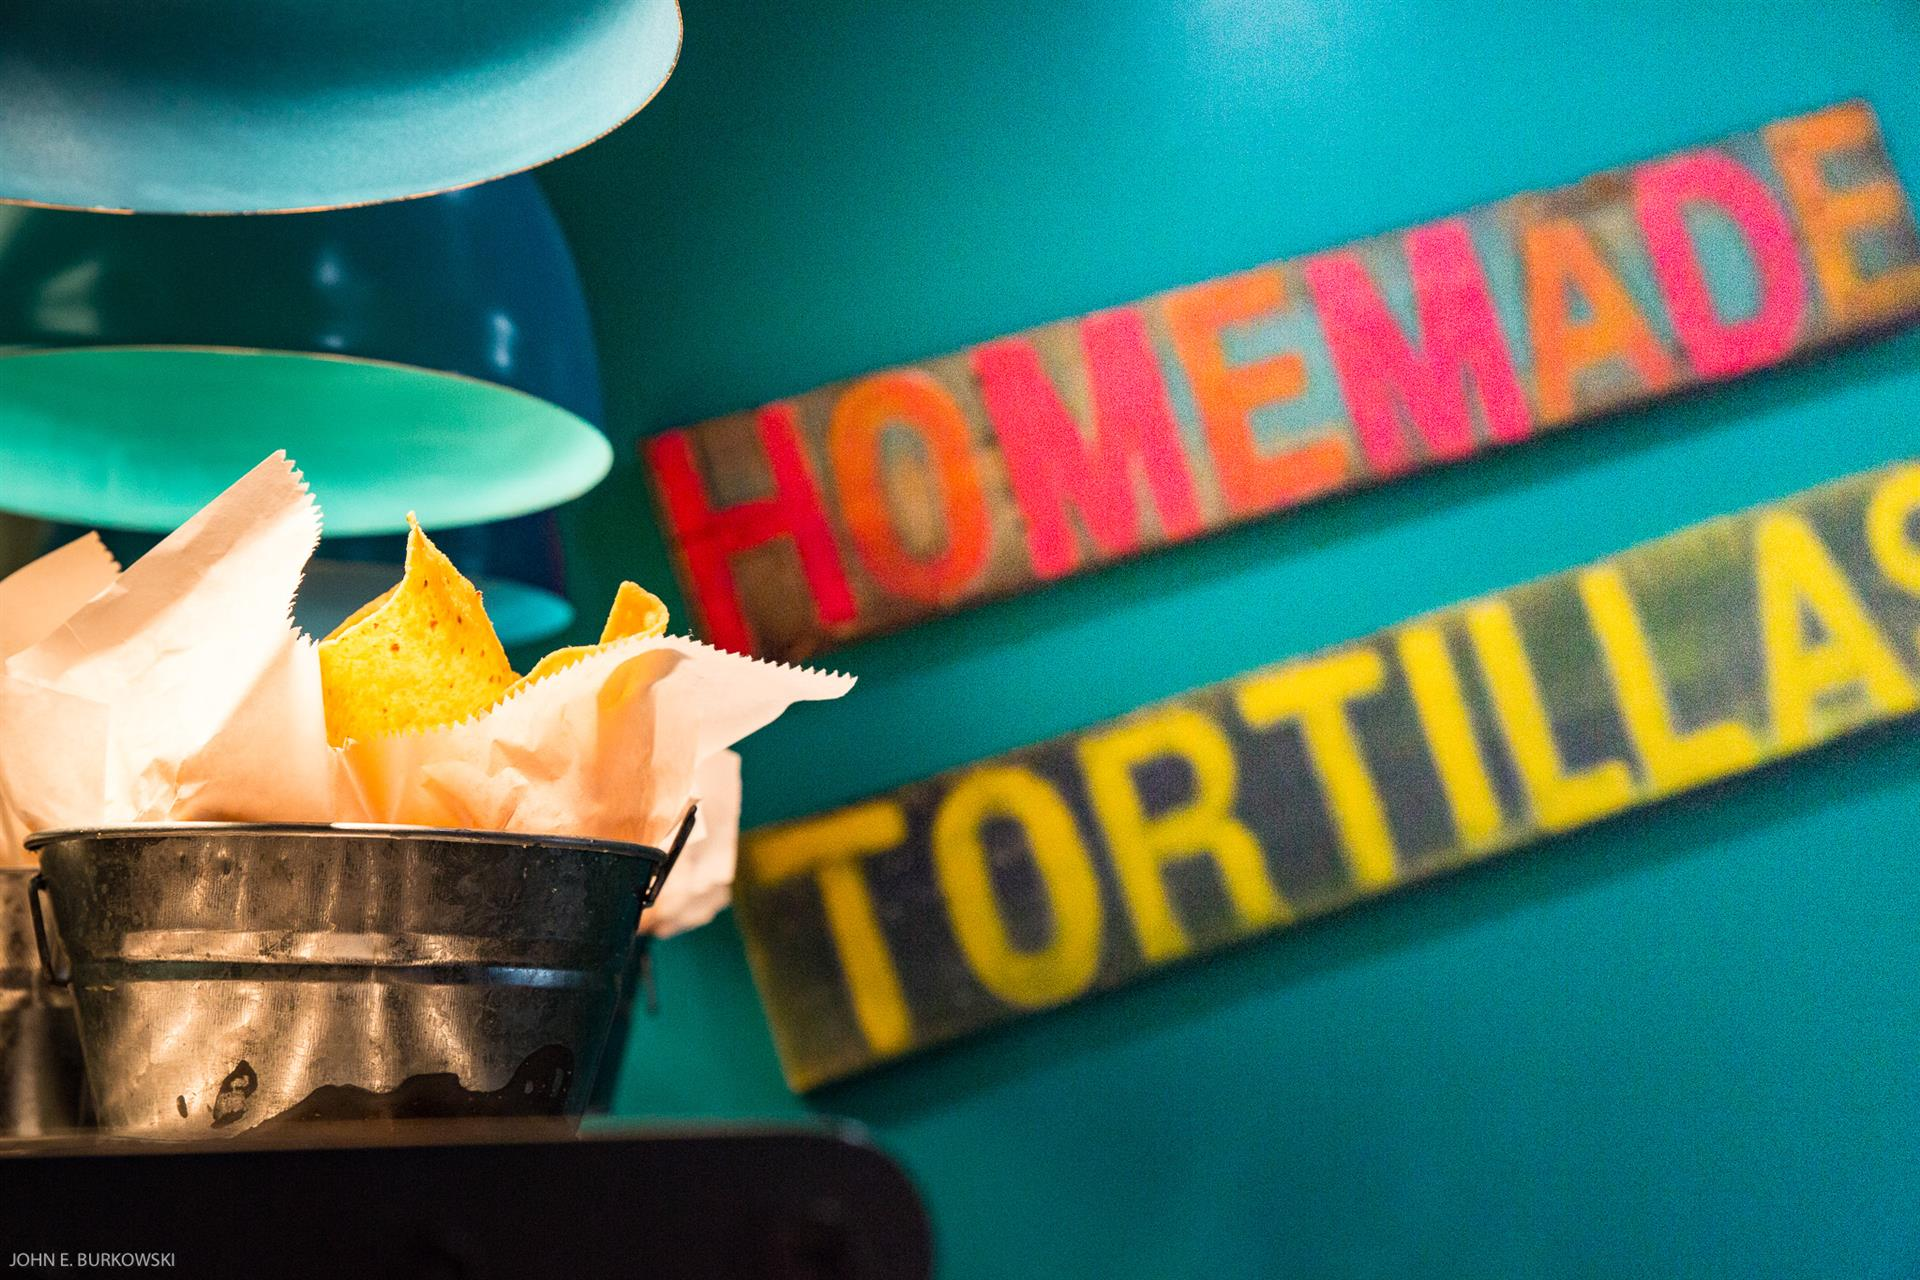 a small bucket with tortillas in it and a sign on the wall that reads homade tortillas